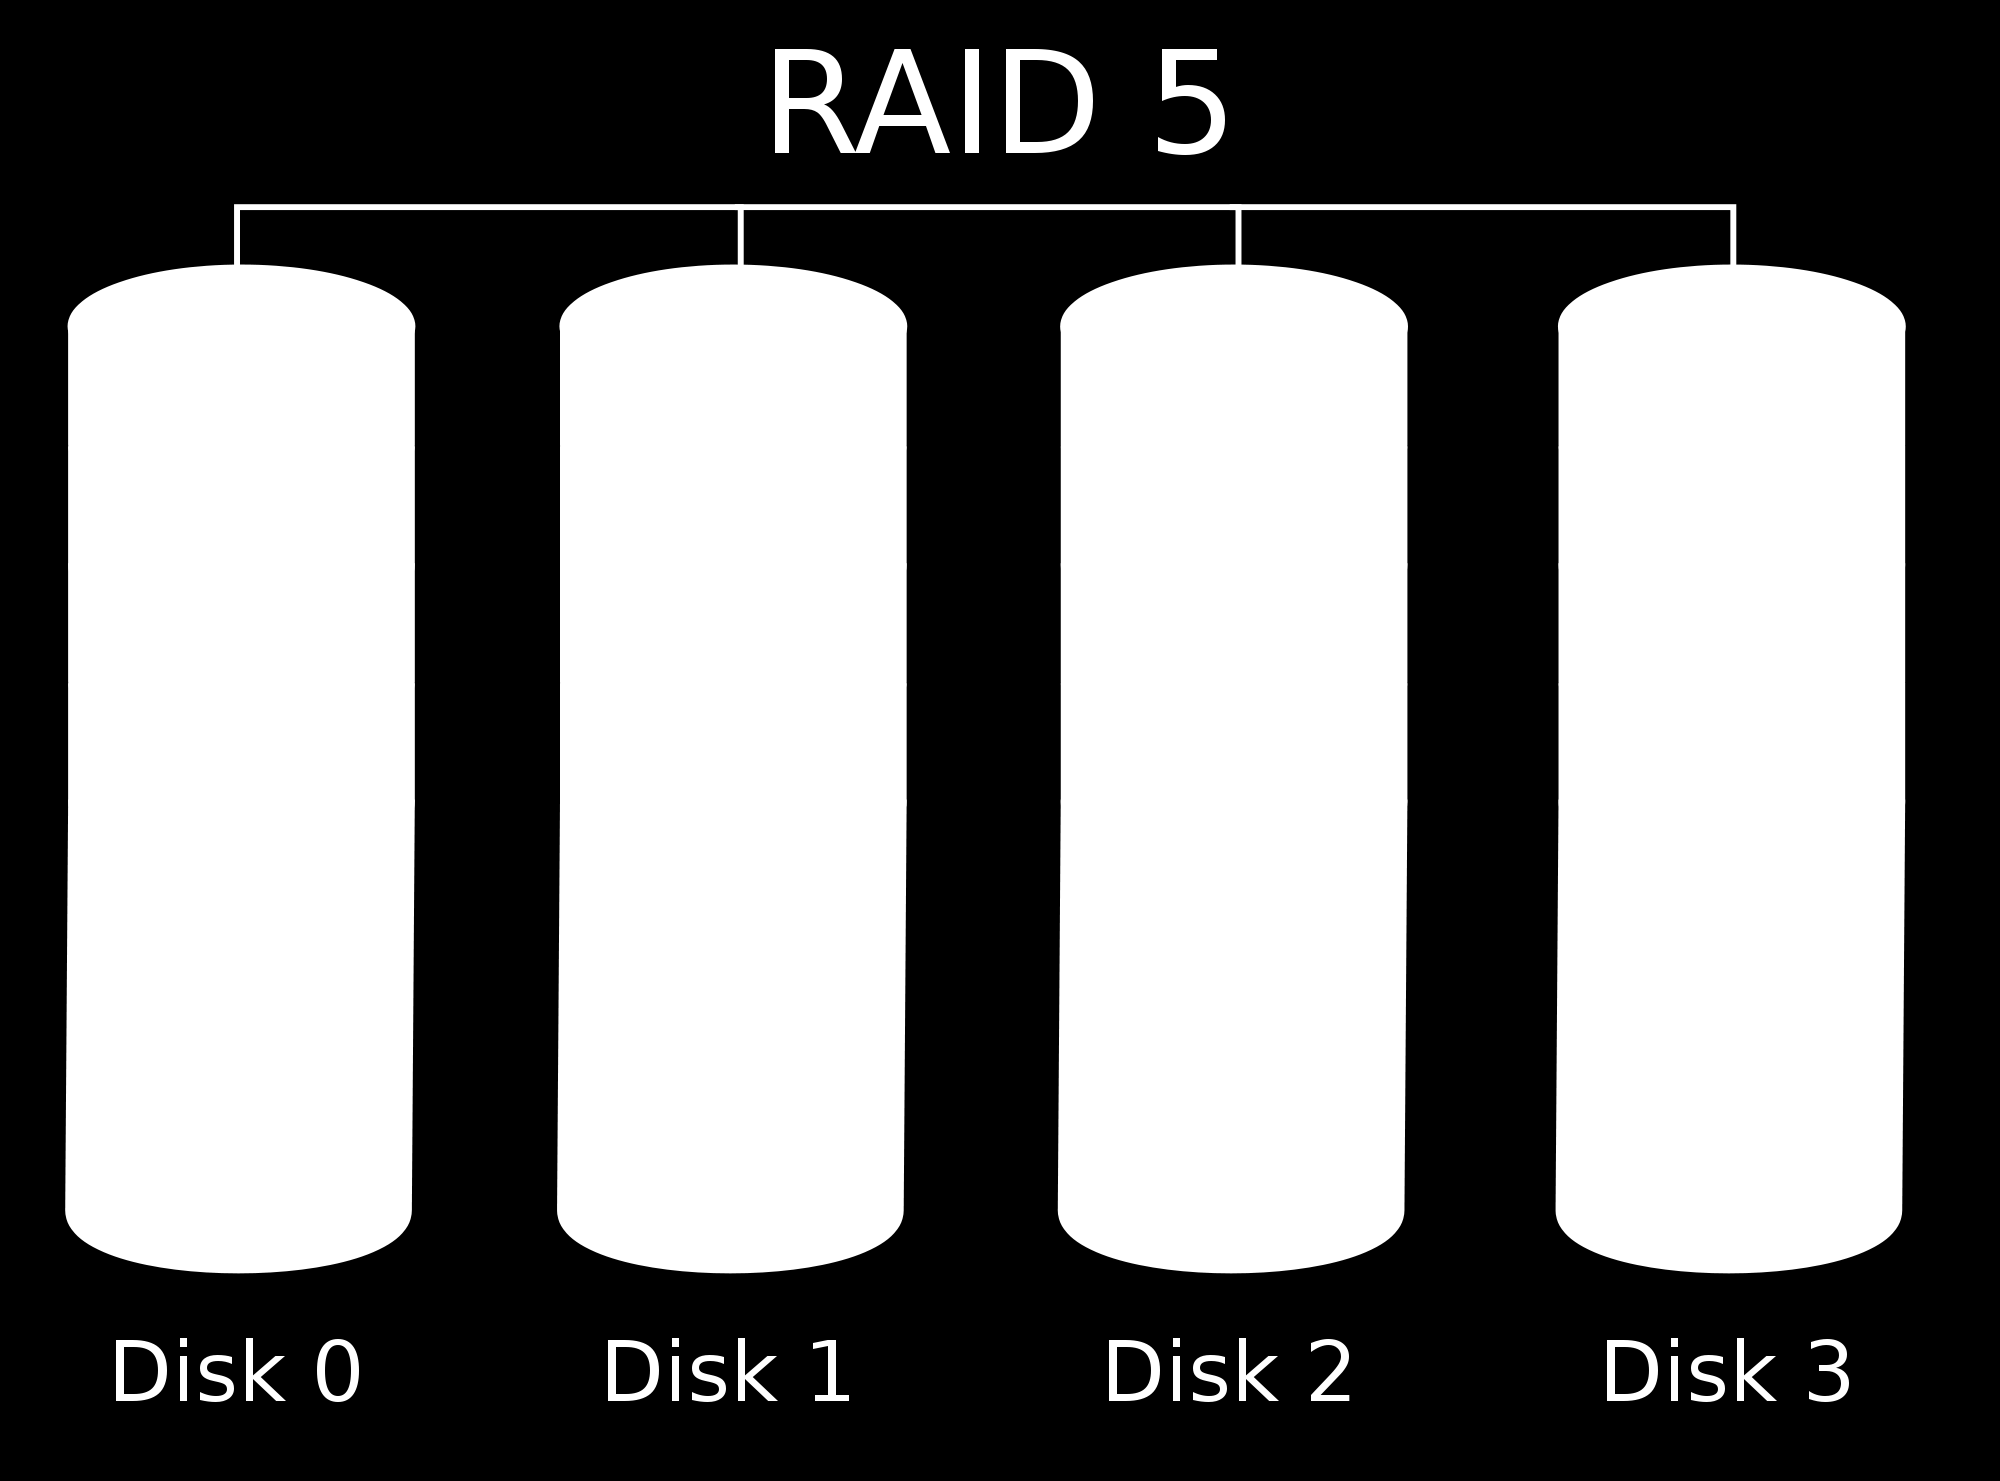 RAID 5 - Block-level striping with distributed parity Data is stored on n + 1 hard disks, where a parity checksum block